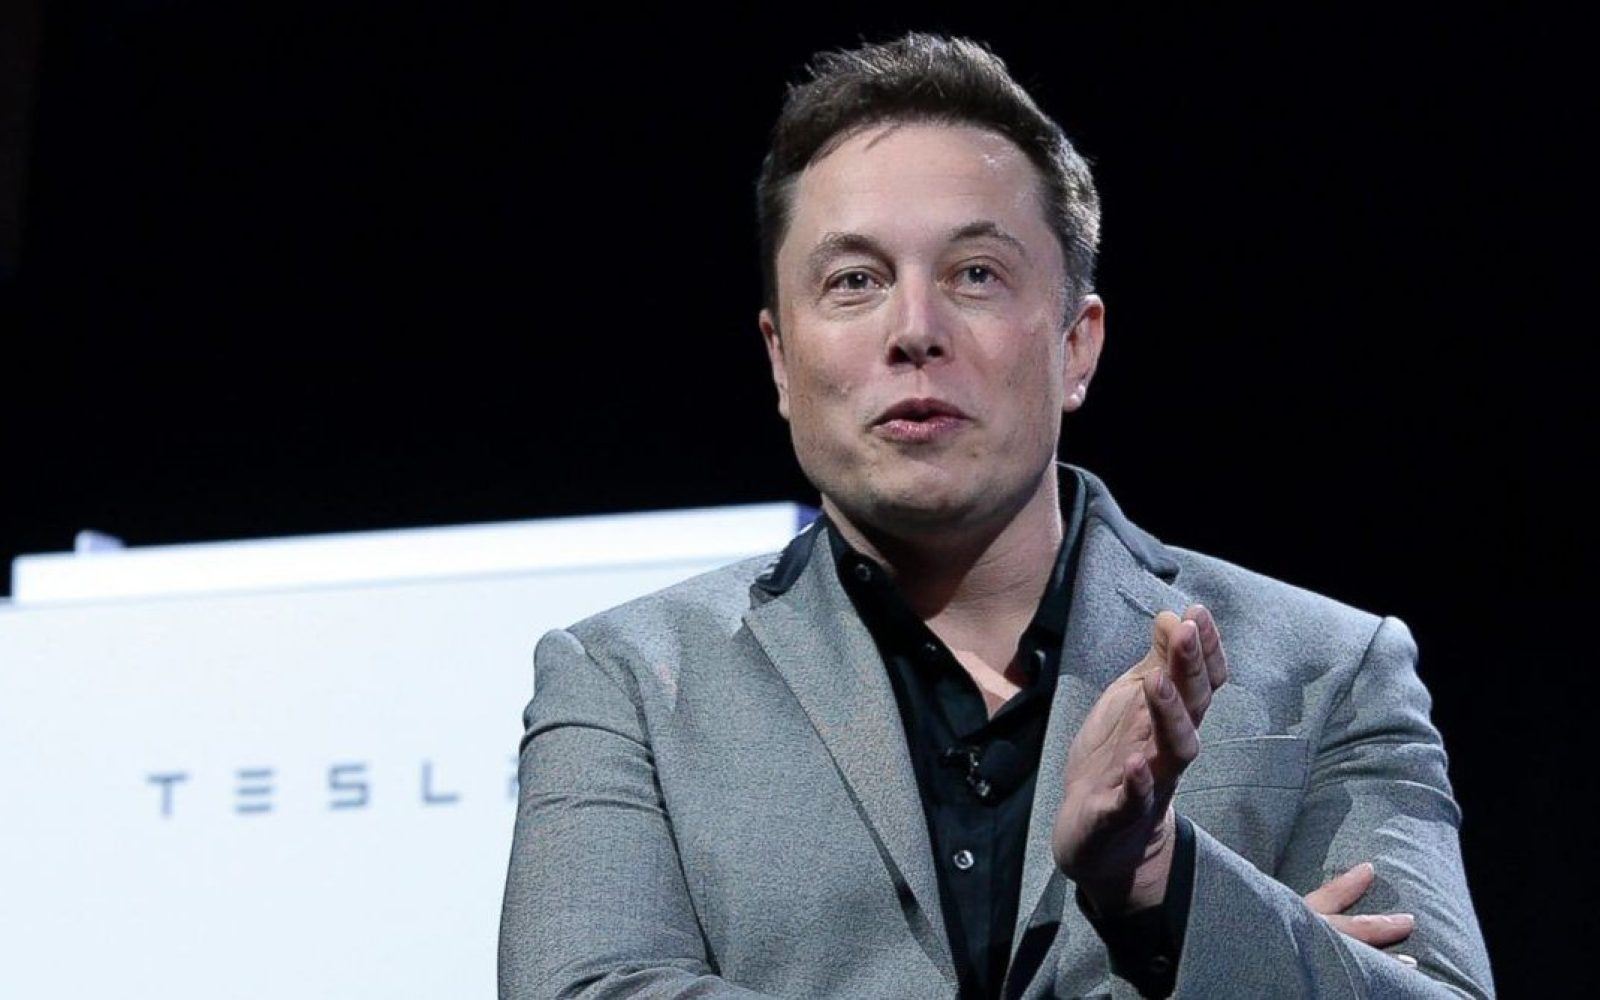 Right-wing group led by Trump propagandist launches campaign against Elon Musk, Tesla and SpaceX